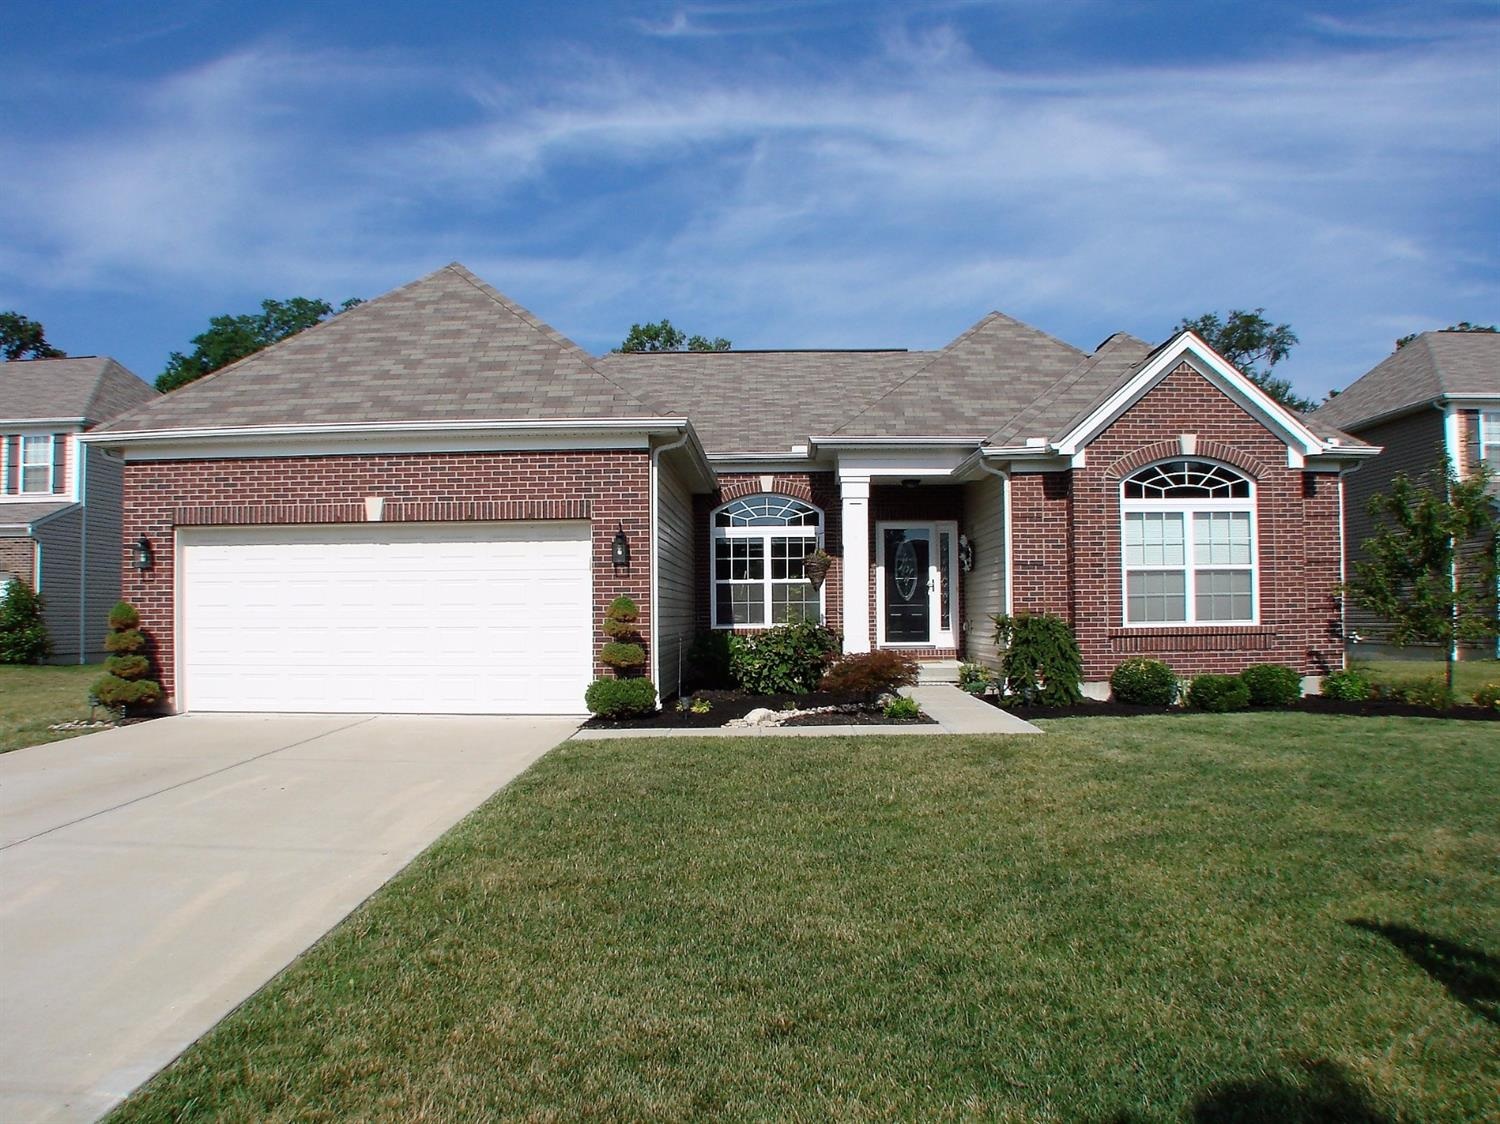 4197 Silver Streak Dr Union Twp. (Clermont), OH